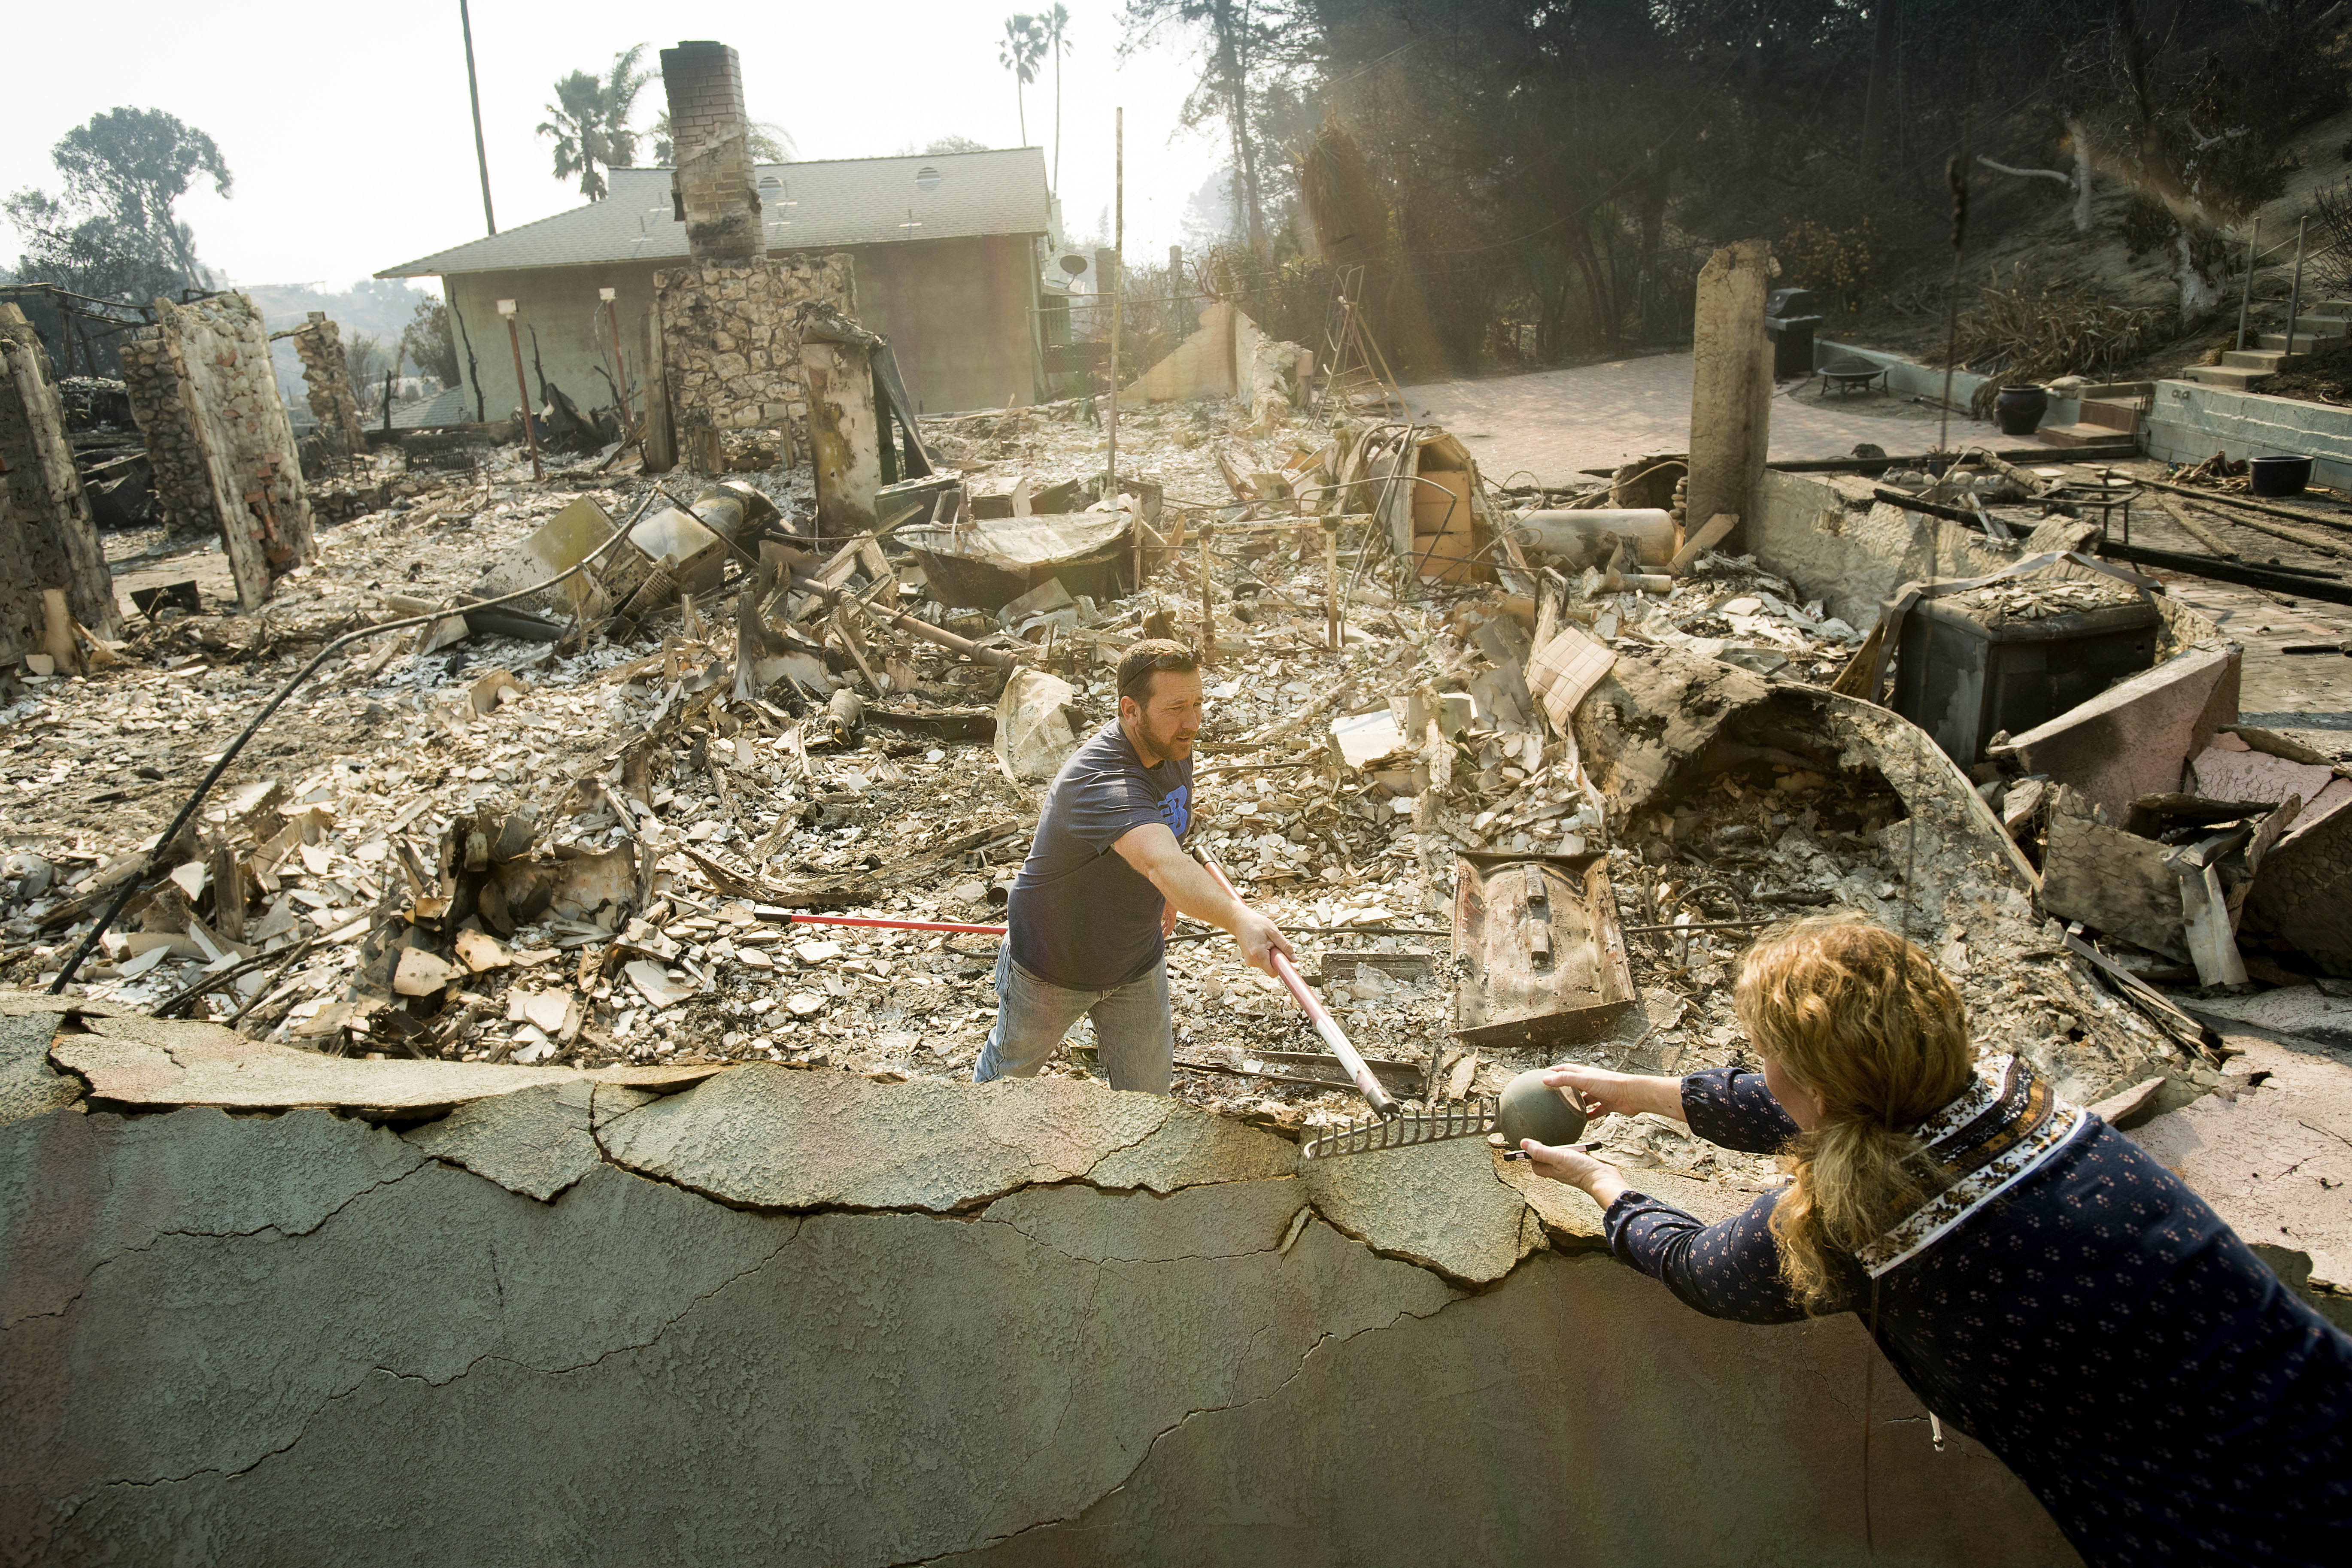 <div class='meta'><div class='origin-logo' data-origin='none'></div><span class='caption-text' data-credit='Noah Berger/AP Photo'>Paul Mattesich hands a jar to his wife Erica Mattesich while sifting through rubble at his family's Ventura, Calif., home following a  wildfire on Wednesday, Dec. 6, 2017.</span></div>